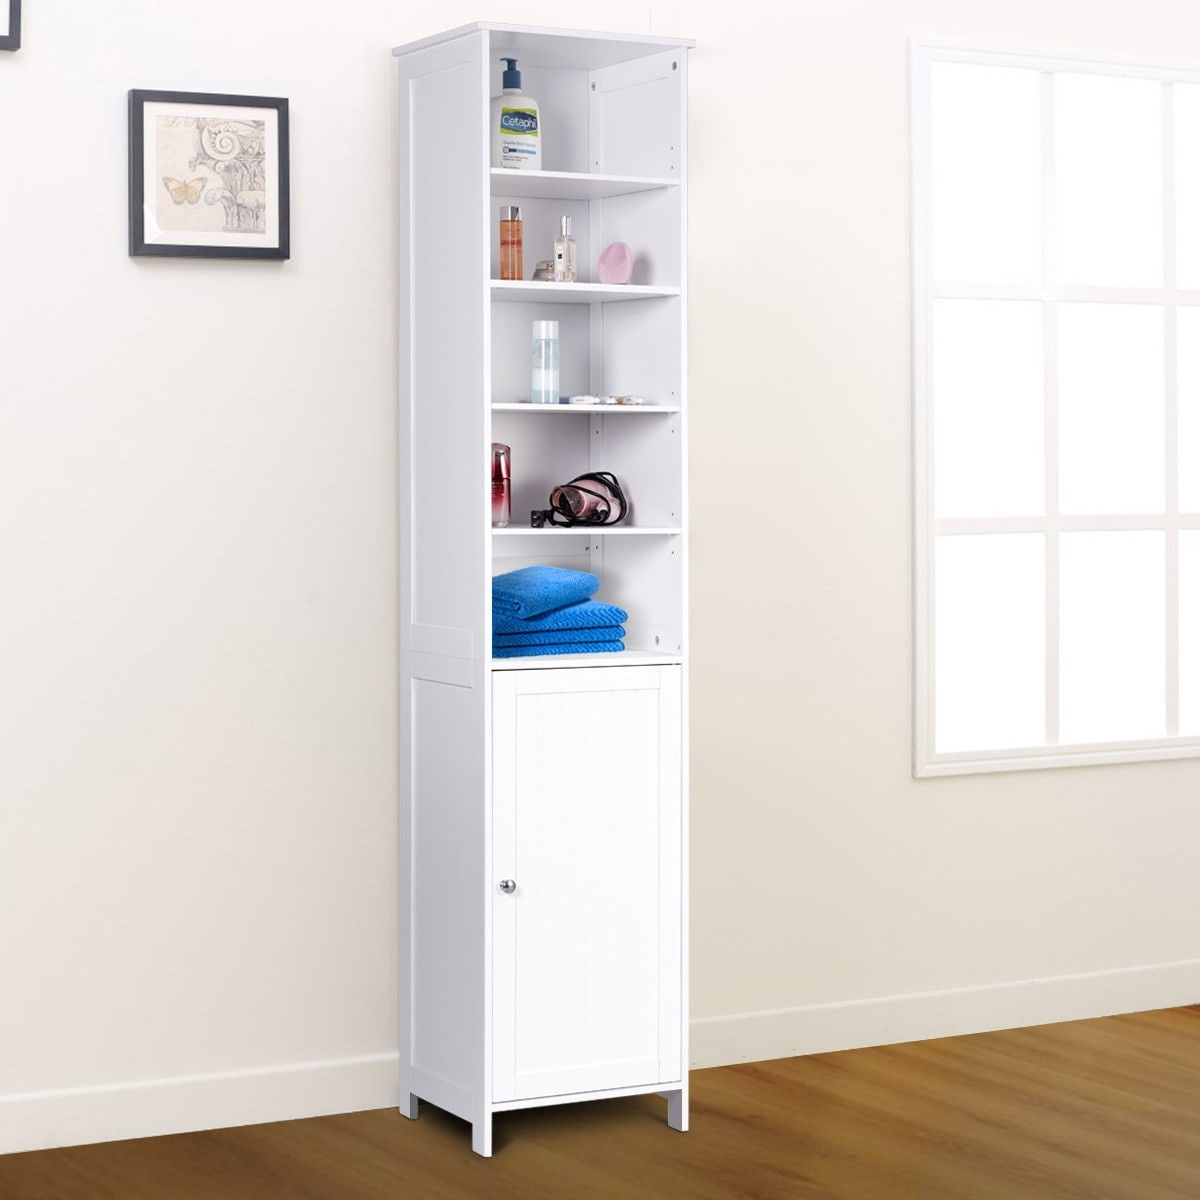 Charmant Shop Costway 72u0027u0027H Bathroom Tall Floor Storage Cabinet Free Standing  Shelving Display White   Free Shipping Today   Overstock.com   20461928